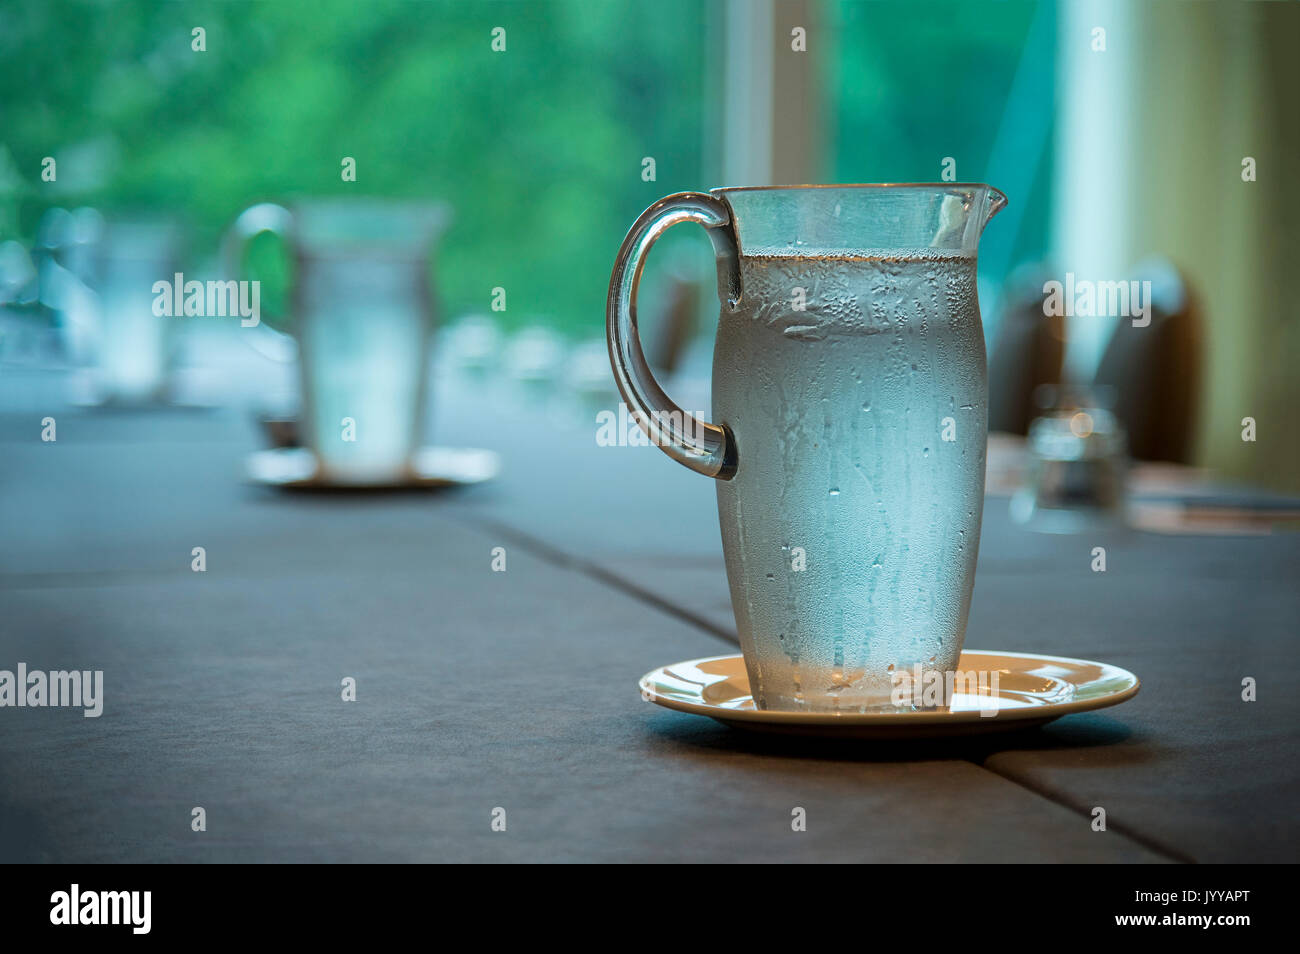 Water Pitcher On Conference Room Table Prior To Meeting - Stock Image